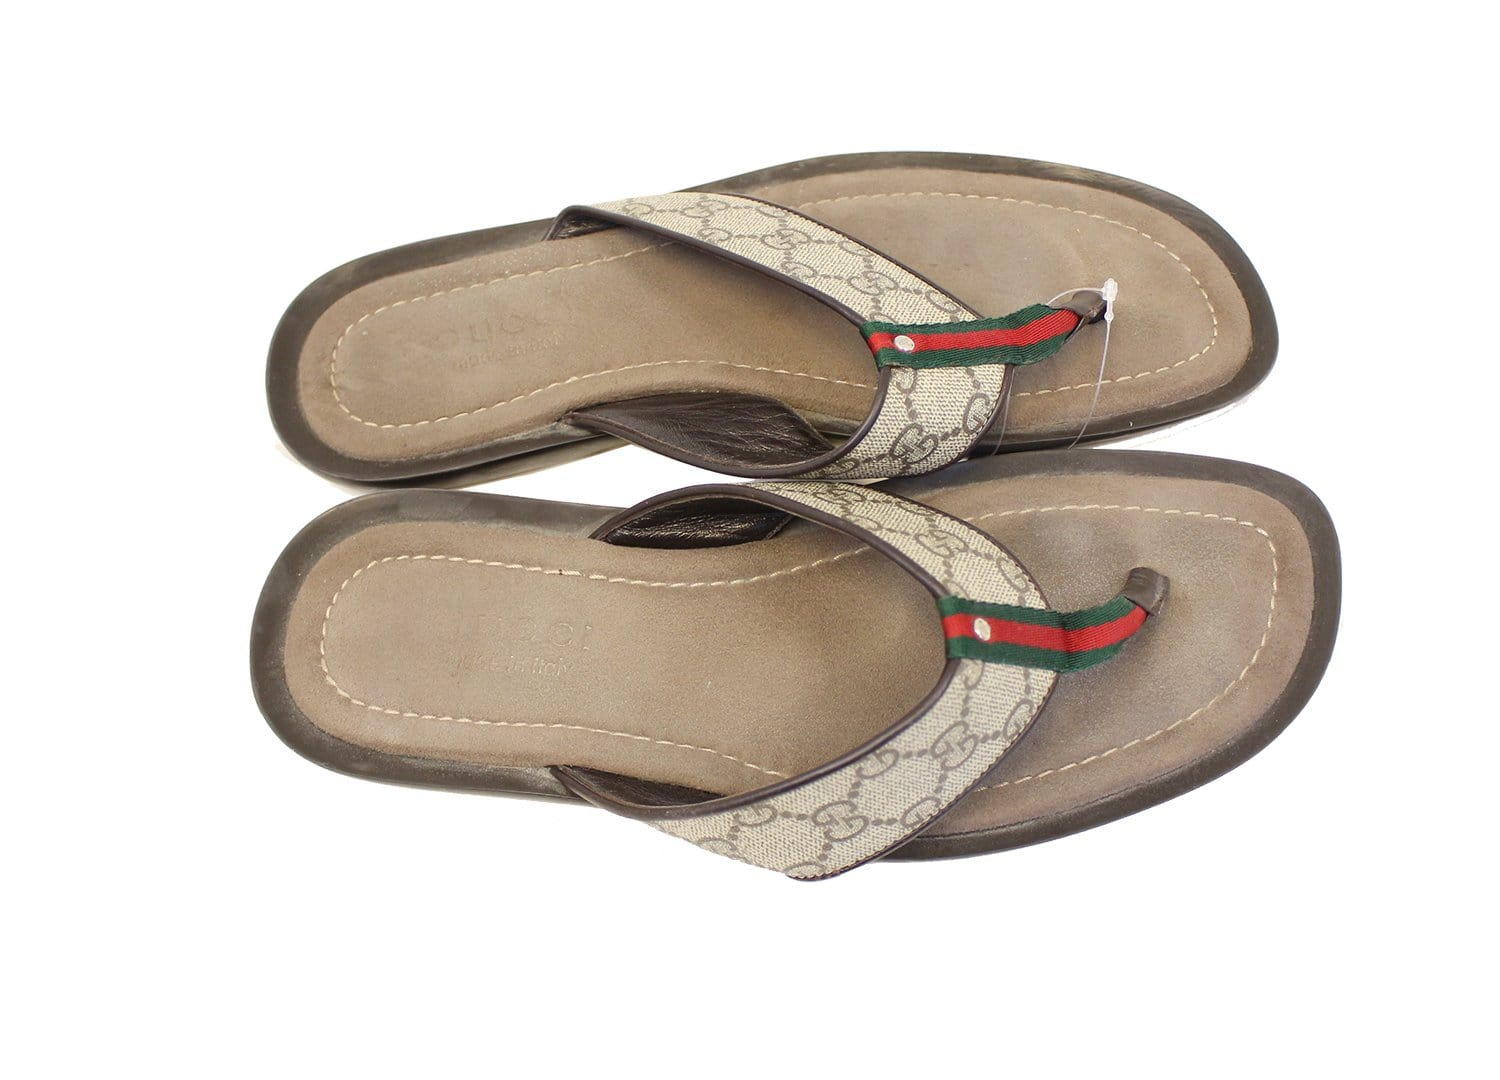 Gucci Gg Supreme Mens Leather Flip Flops Sandals Size 9 G -4464